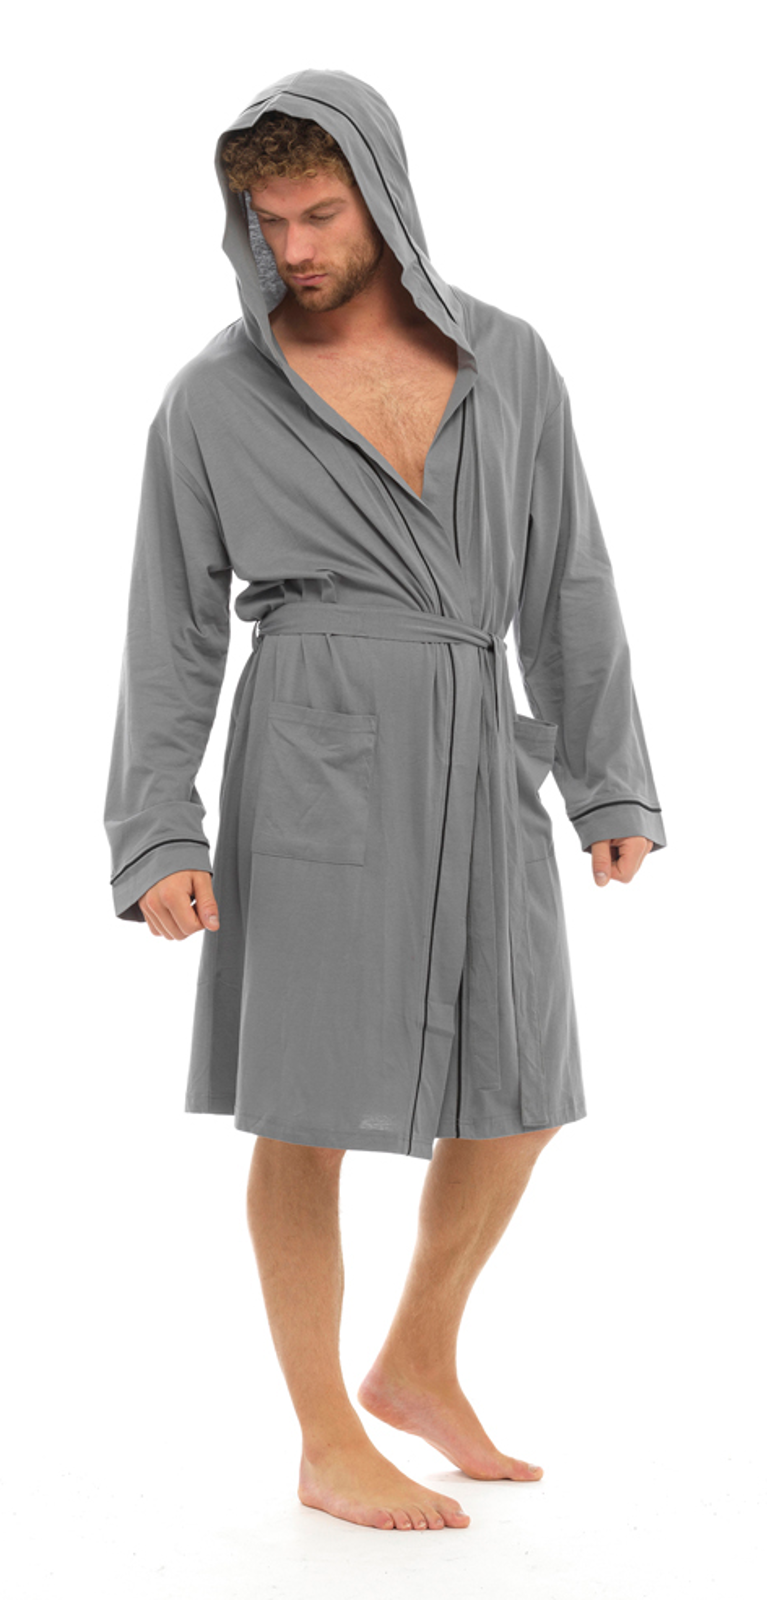 mens lightweight hooded robe summer dressing gown 100 cotton bathrobe size ebay. Black Bedroom Furniture Sets. Home Design Ideas